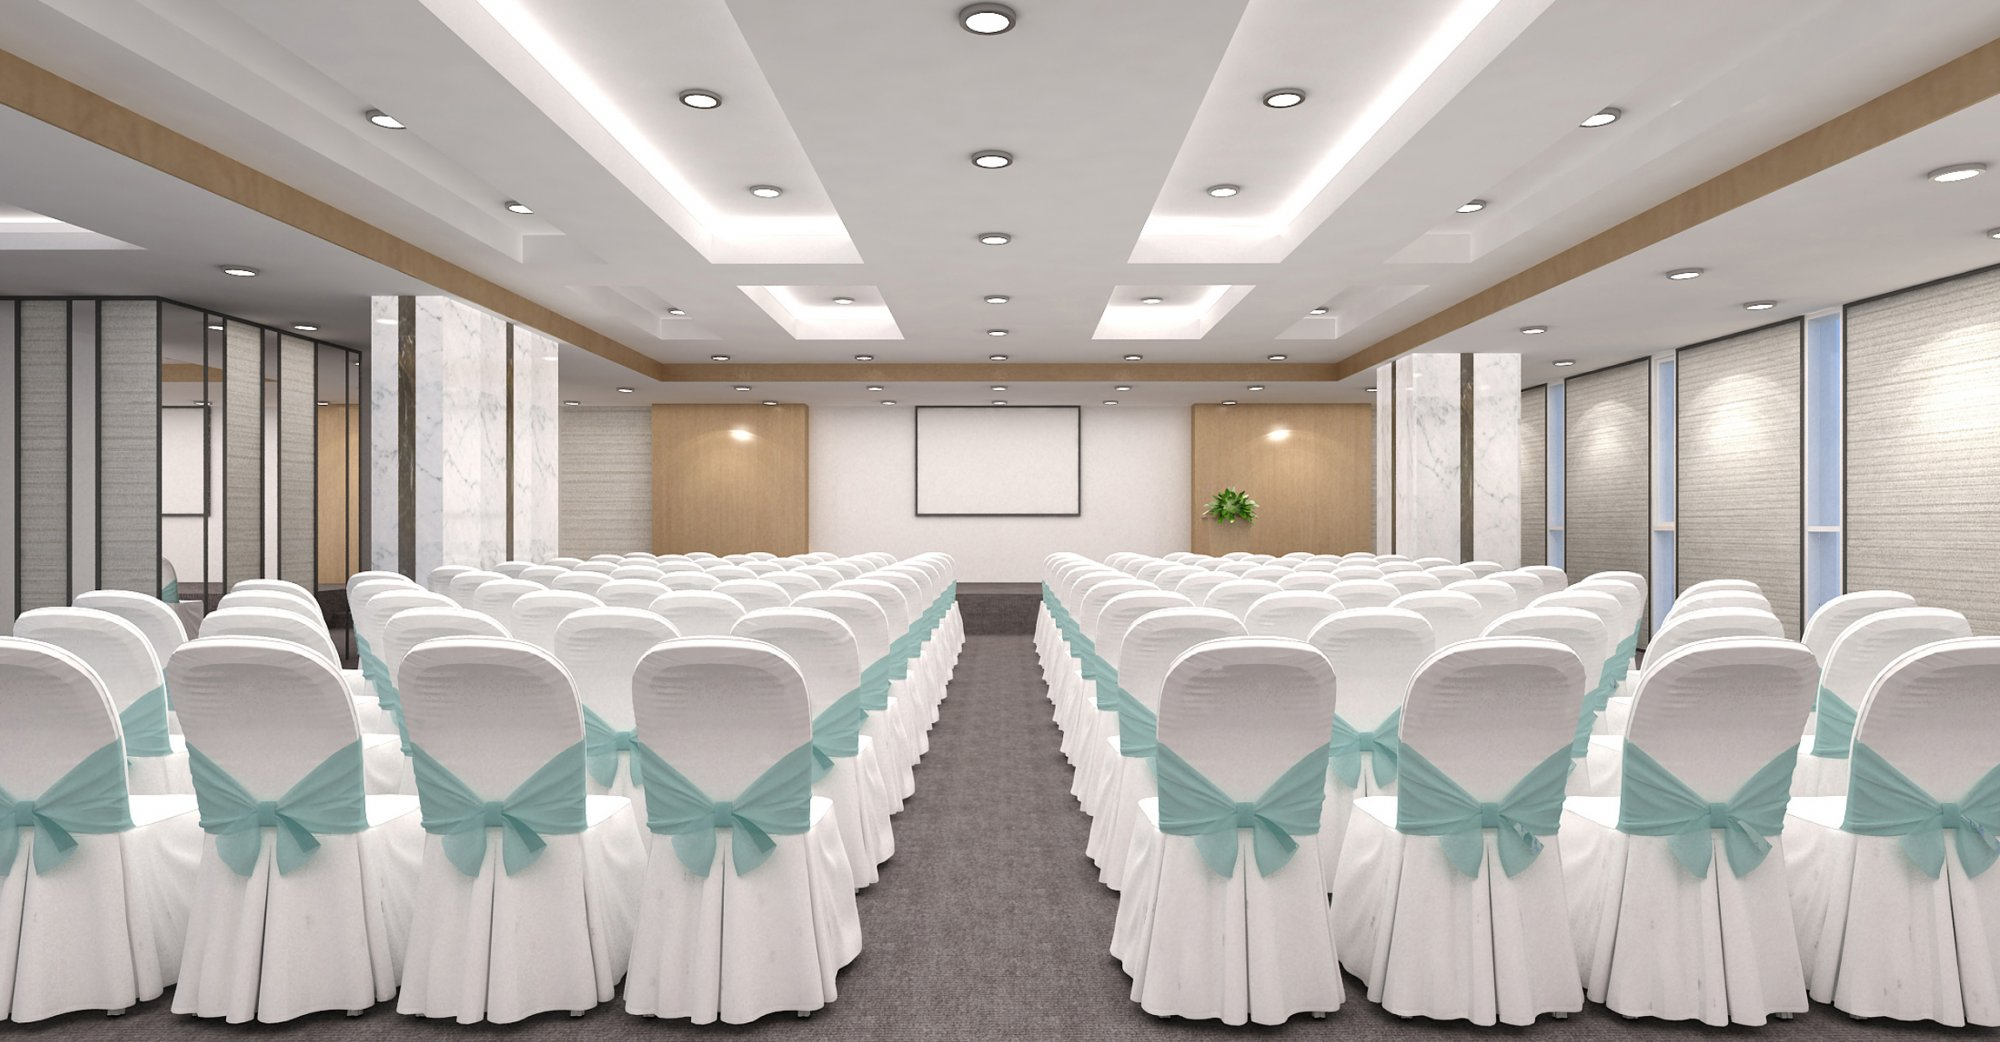 http://xaviahotel.com/vnt_upload/weblink/Conference_Hall.jpg